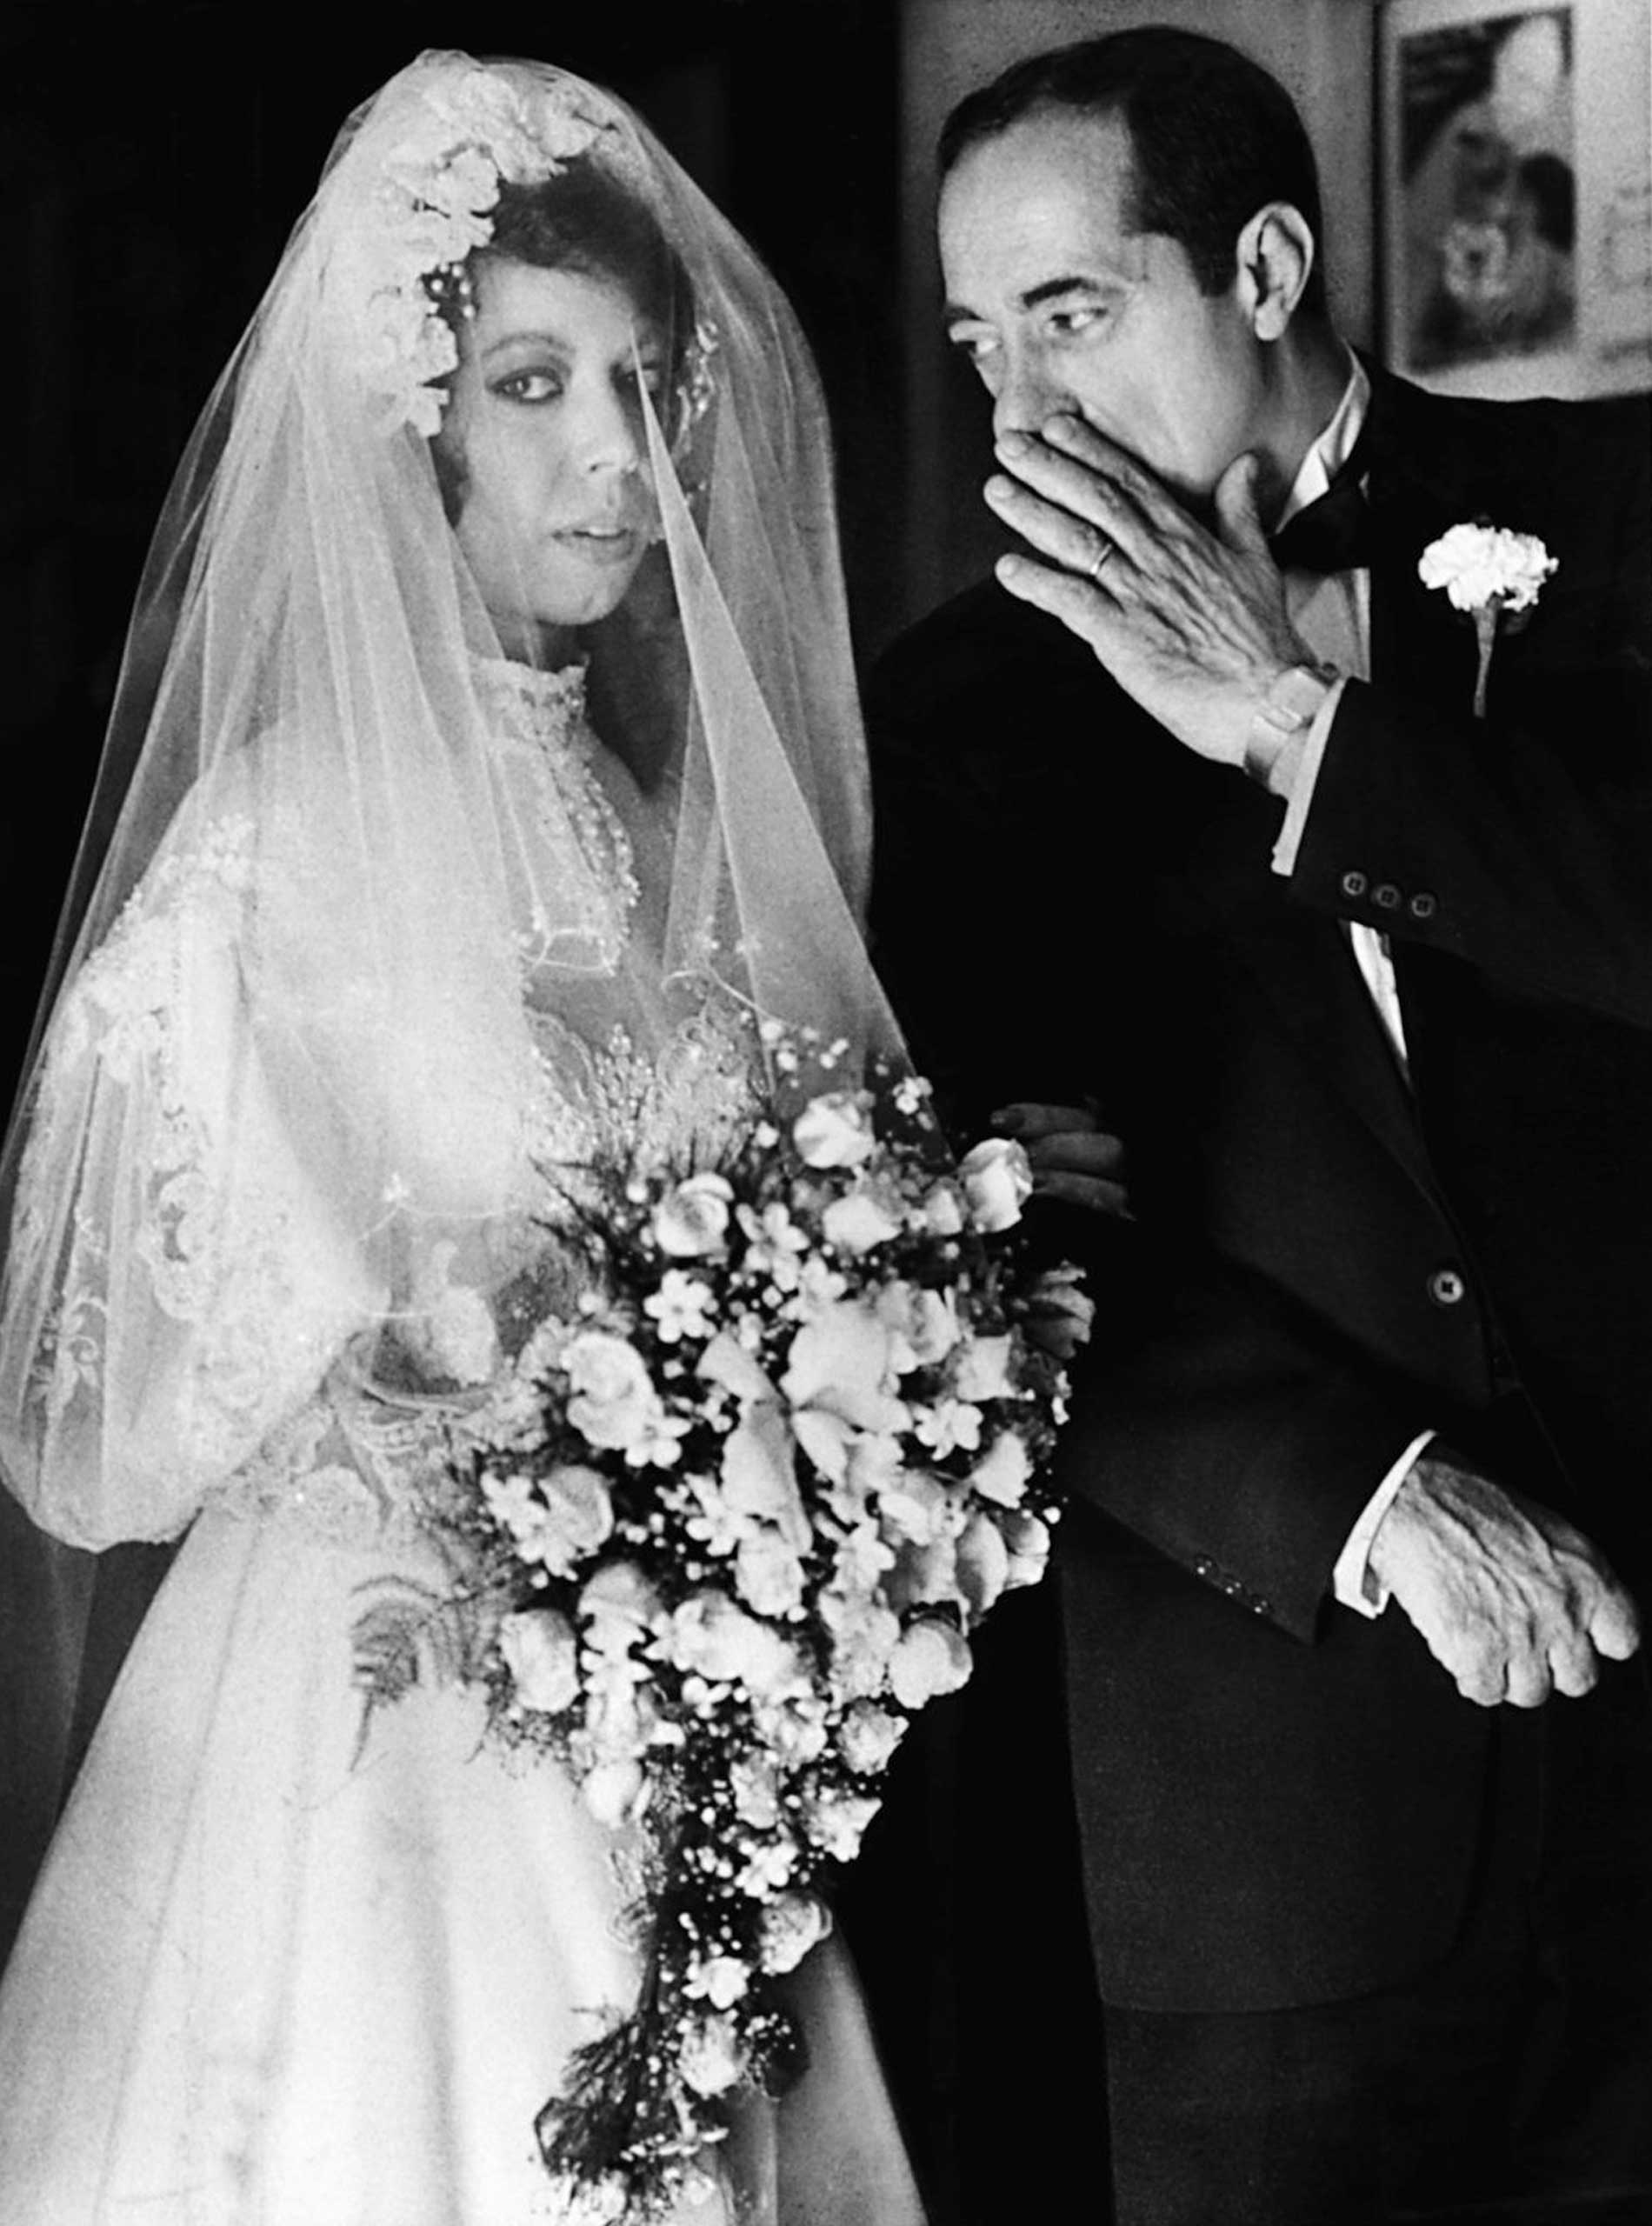 Mario Coumo with his daughter Margaret before her marriage to Peter Perpignano on Oct. 10, 1982.